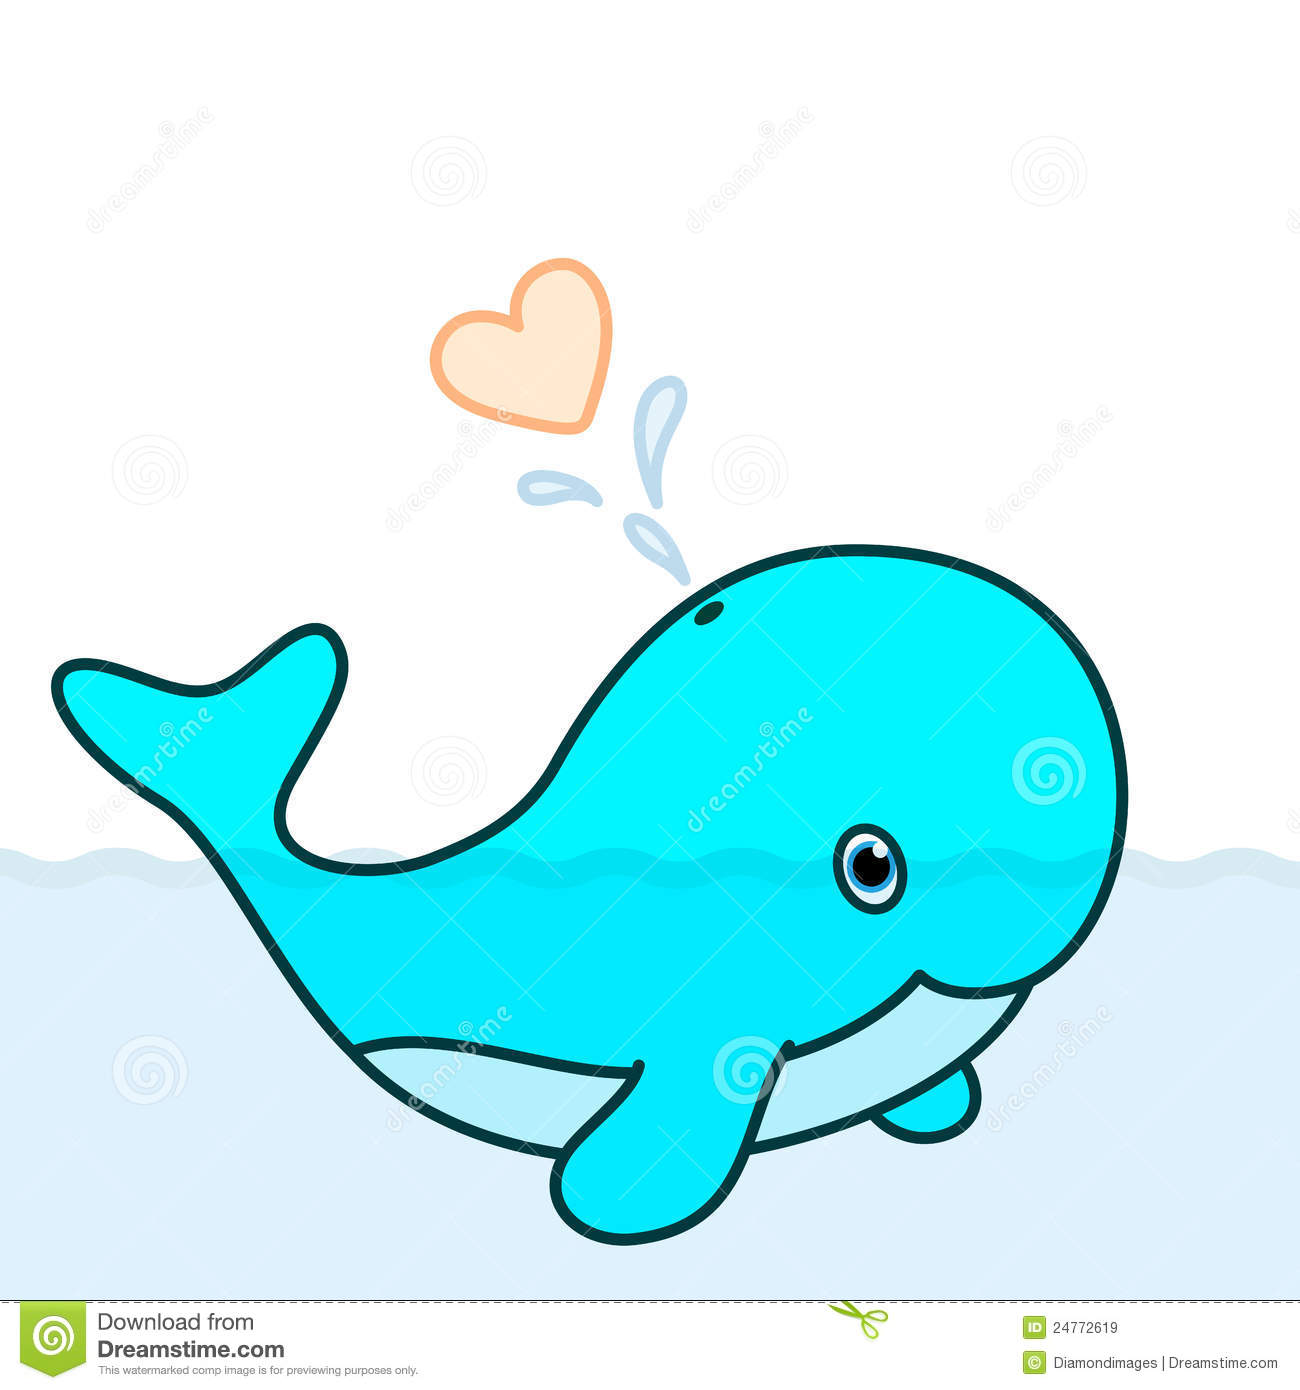 Blue Whale clipart cute baby dolphin Images Clipart Panda Cute Dolphin